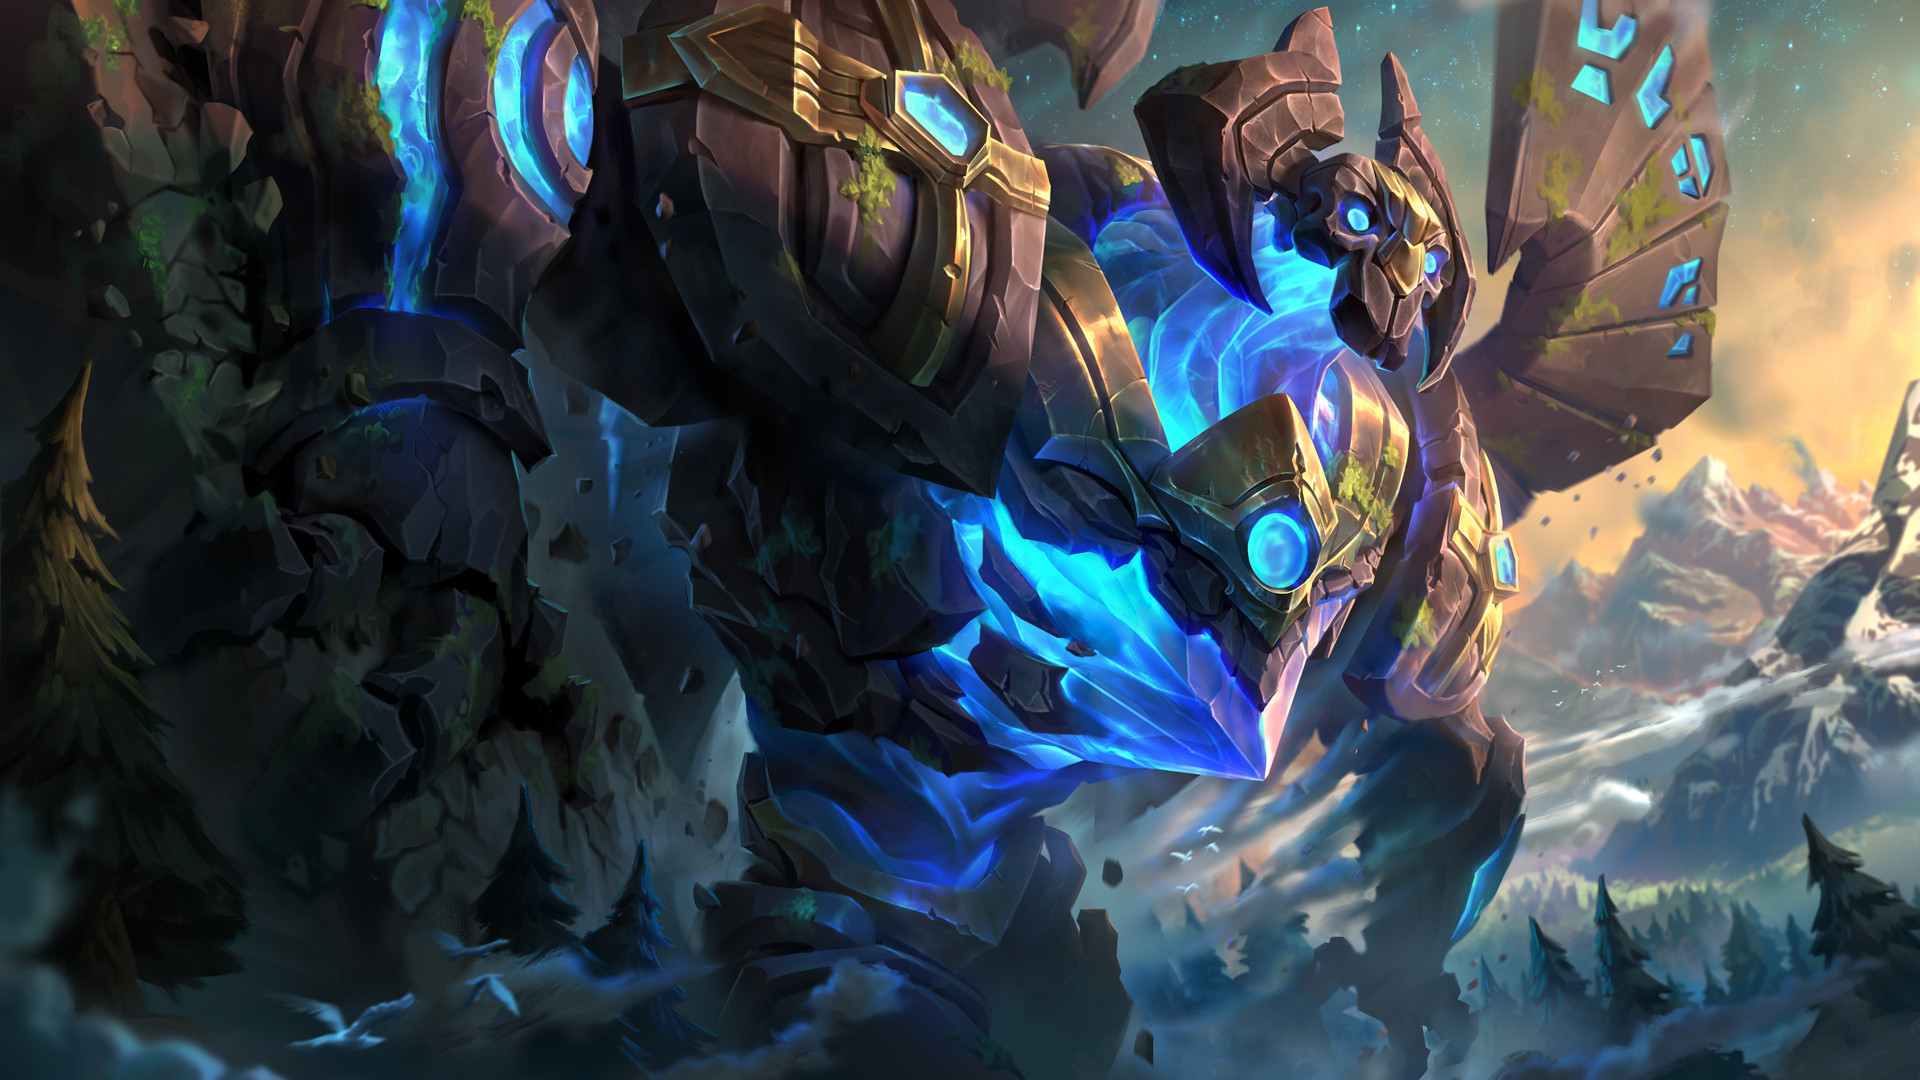 Mike azevedo enchanted galio splash mike azevedo